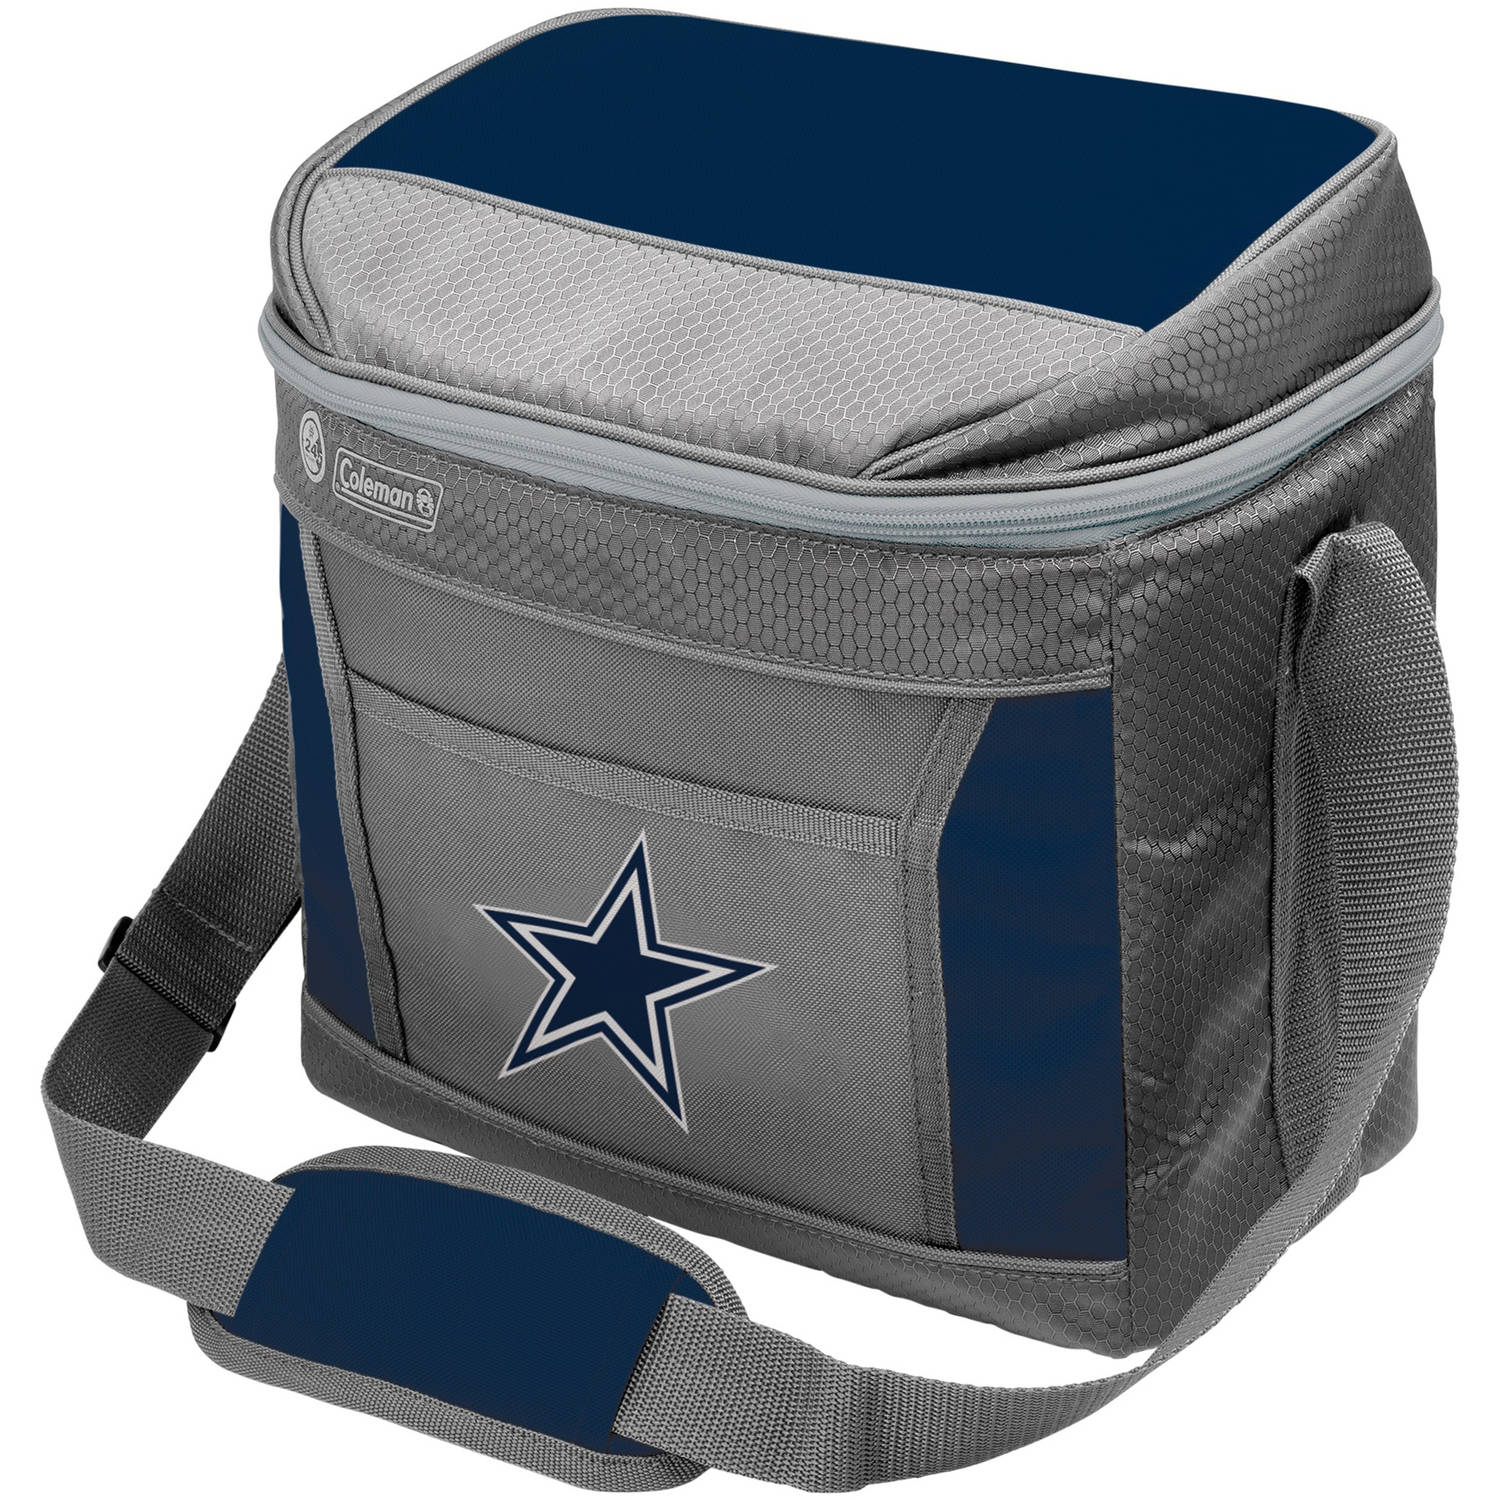 NFL 16-Can Soft-Sided Cooler, Dallas